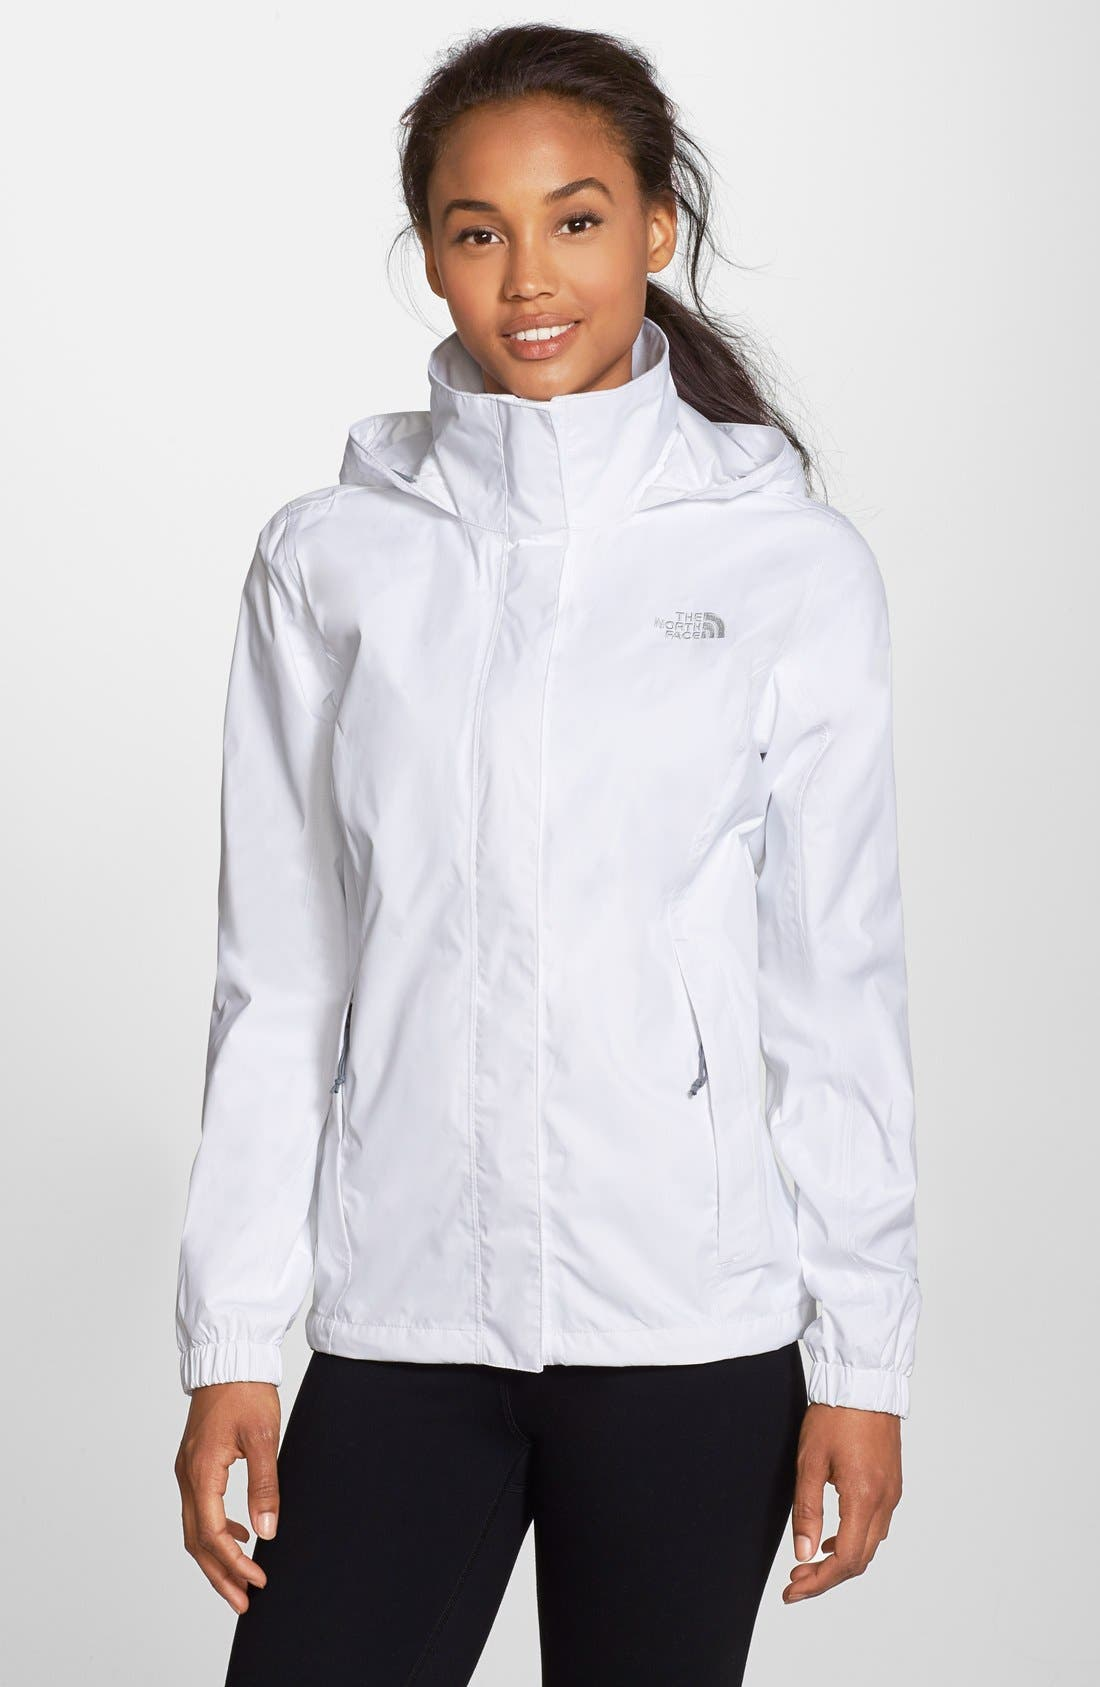 Alternate Image 1 Selected - The North Face 'Resolve' Waterproof Jacket